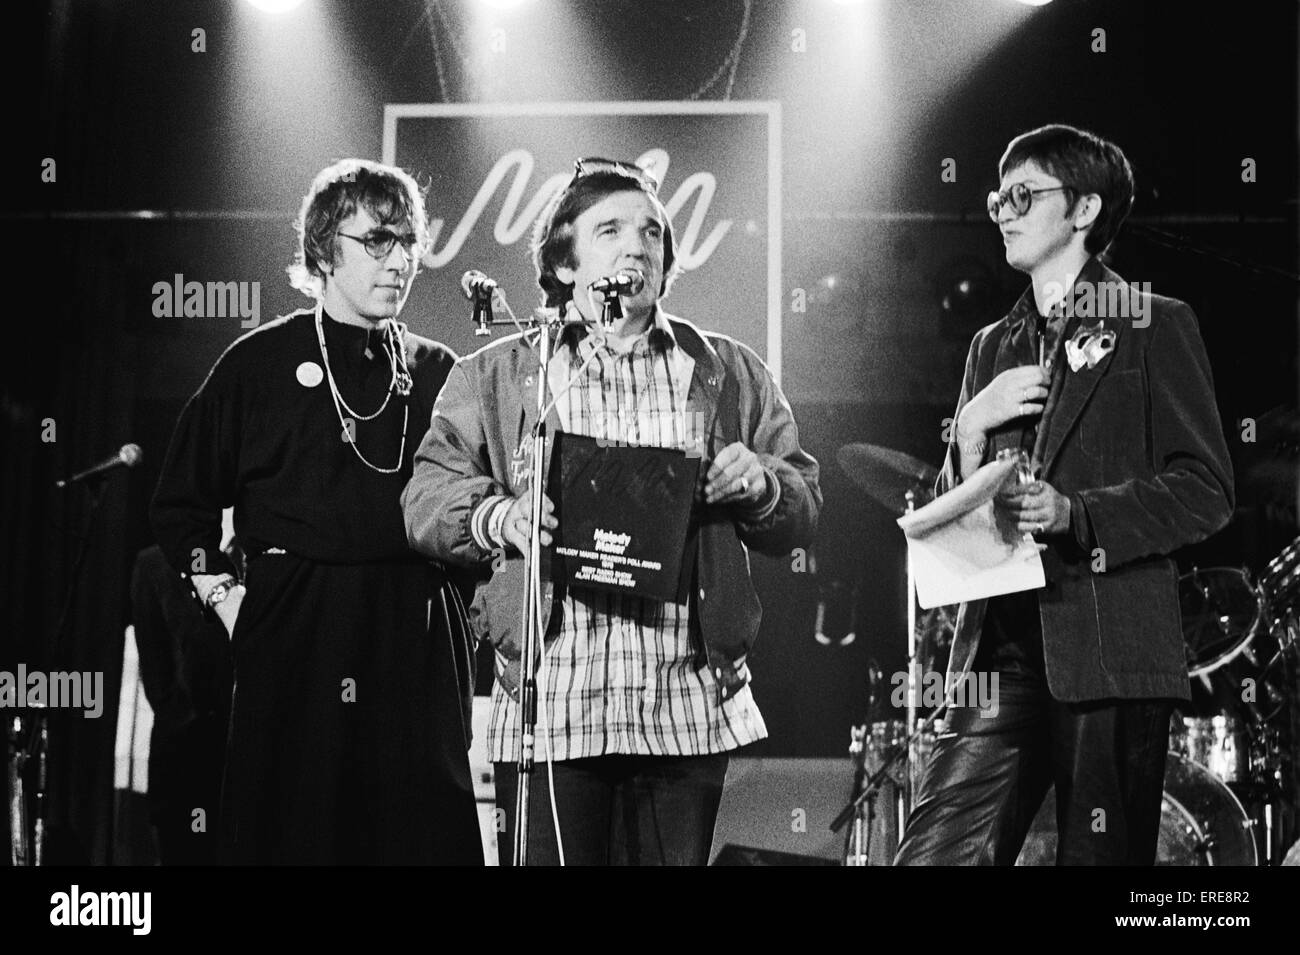 Australian DJ Alan 'Fluff' Freeman, MBE (1927-2006) receiving an award from Peter Cook (wearing a dress) - Stock Image